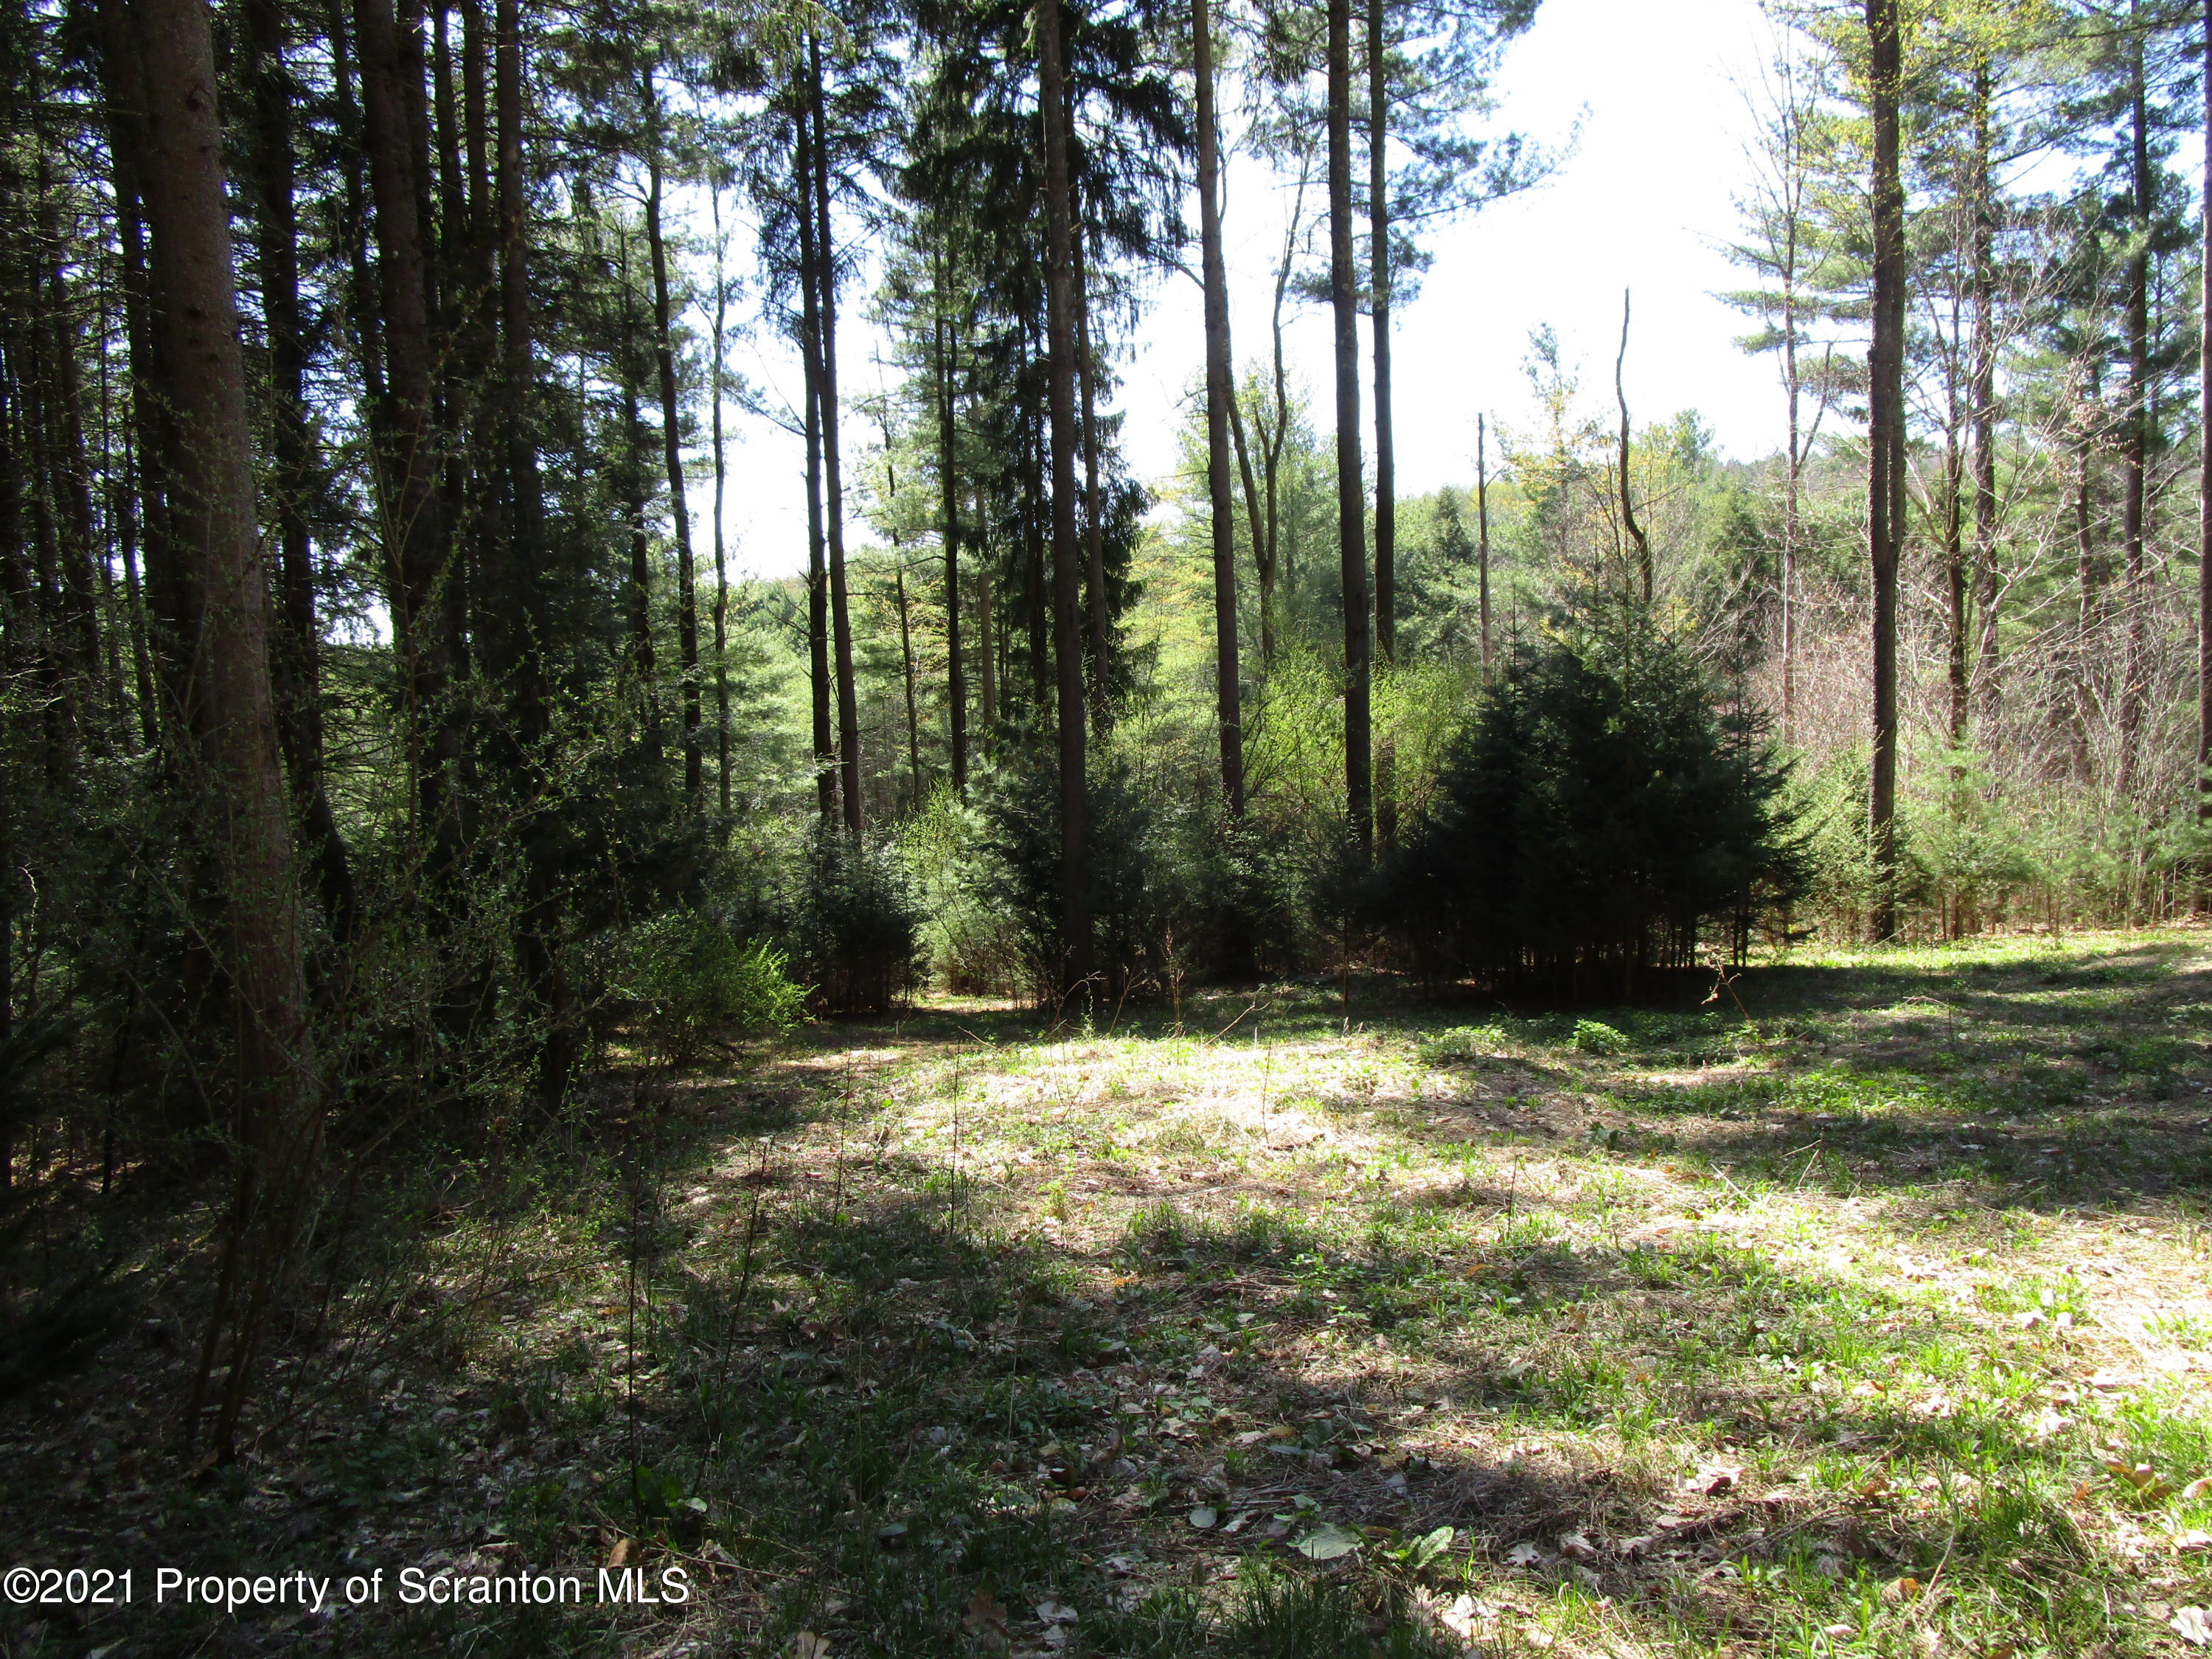 9003 Wyalusing New Albany Rd, Wyalusing, Pennsylvania 18853, ,Land,For Sale,Wyalusing New Albany,21-1641